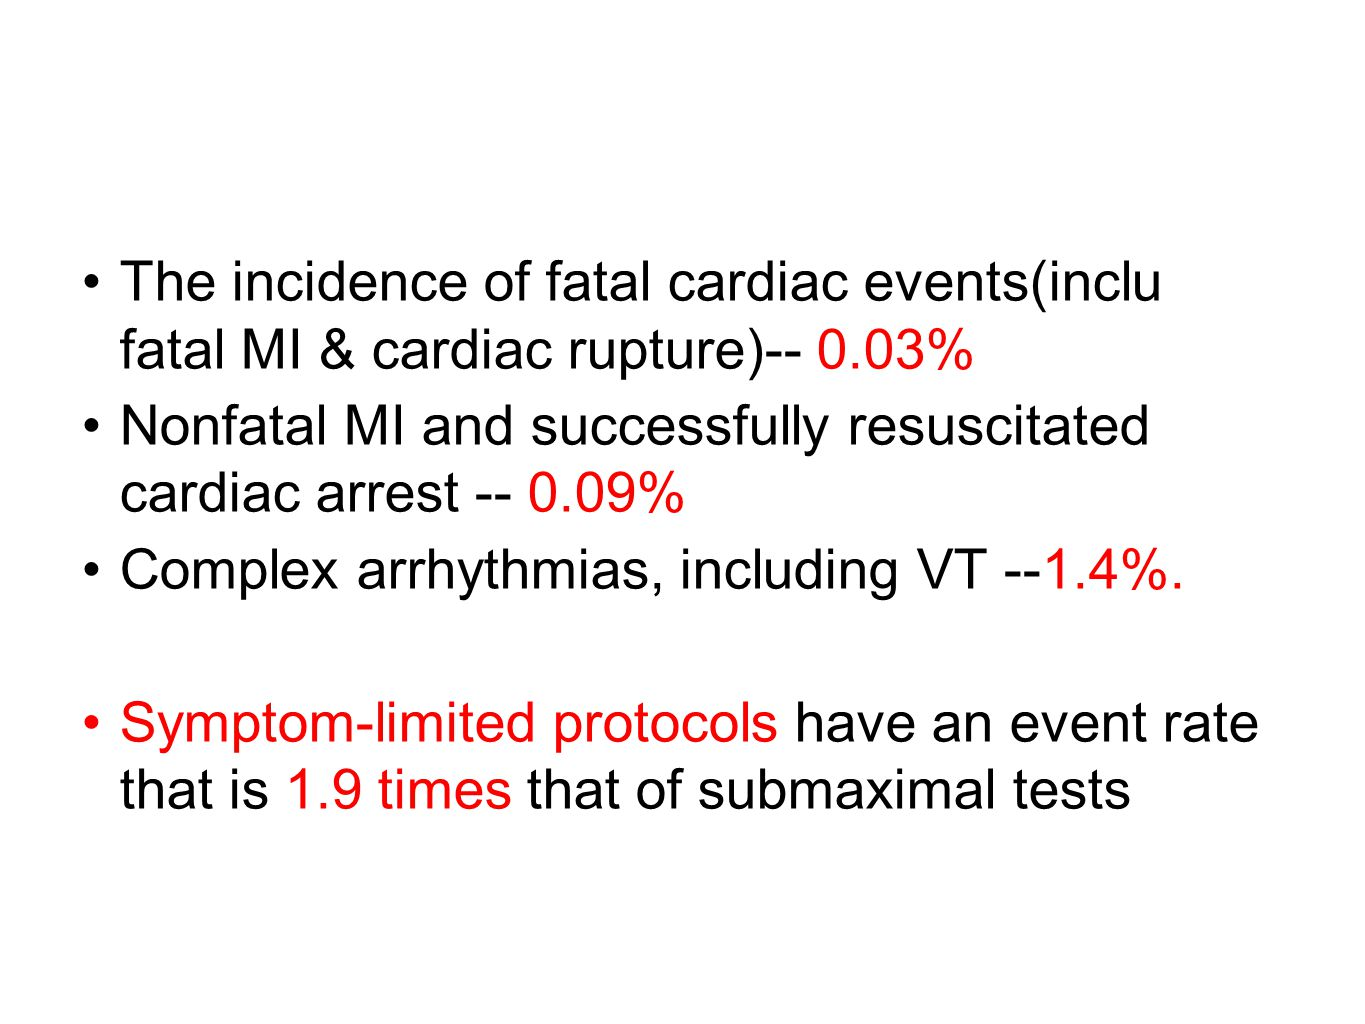 The incidence of fatal cardiac events(inclu fatal MI & cardiac rupture)-- 0.03%